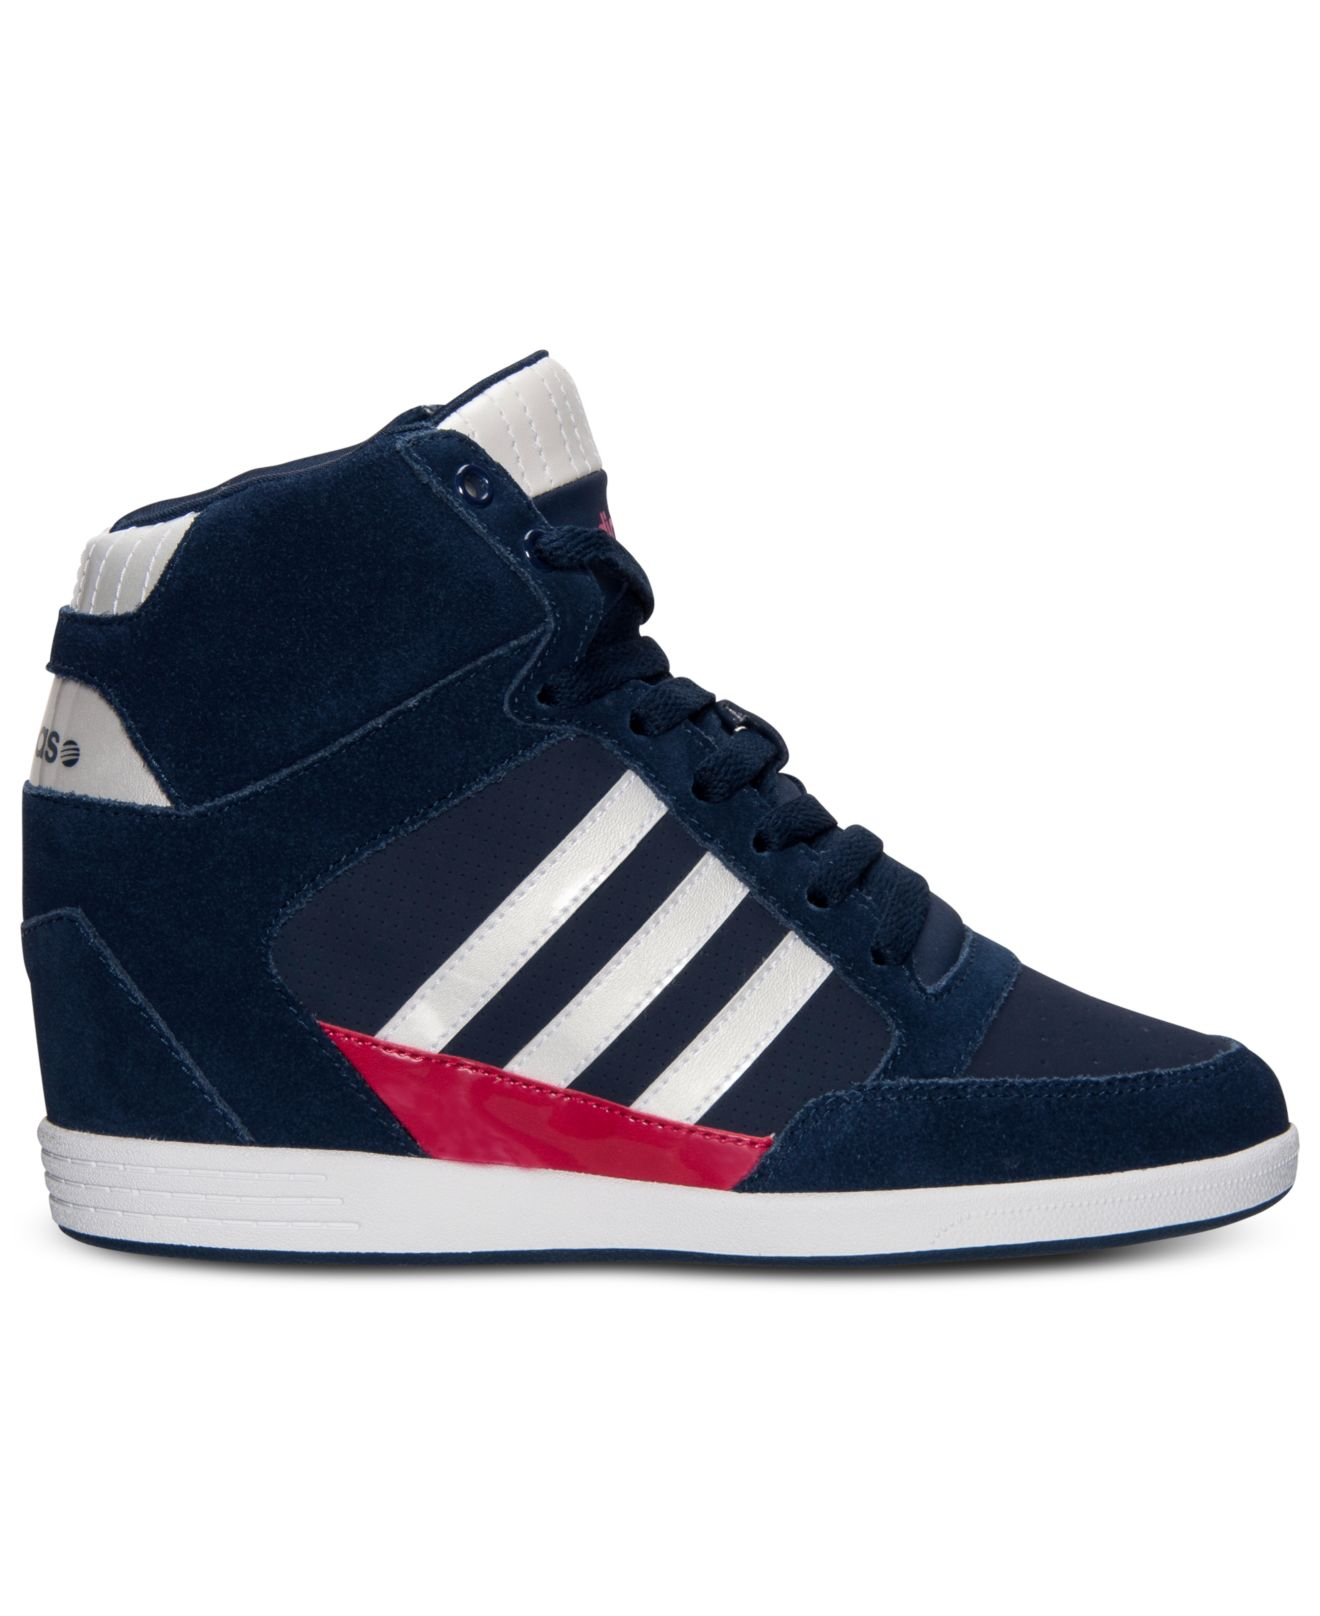 adidas s weneo wedge casual sneakers from